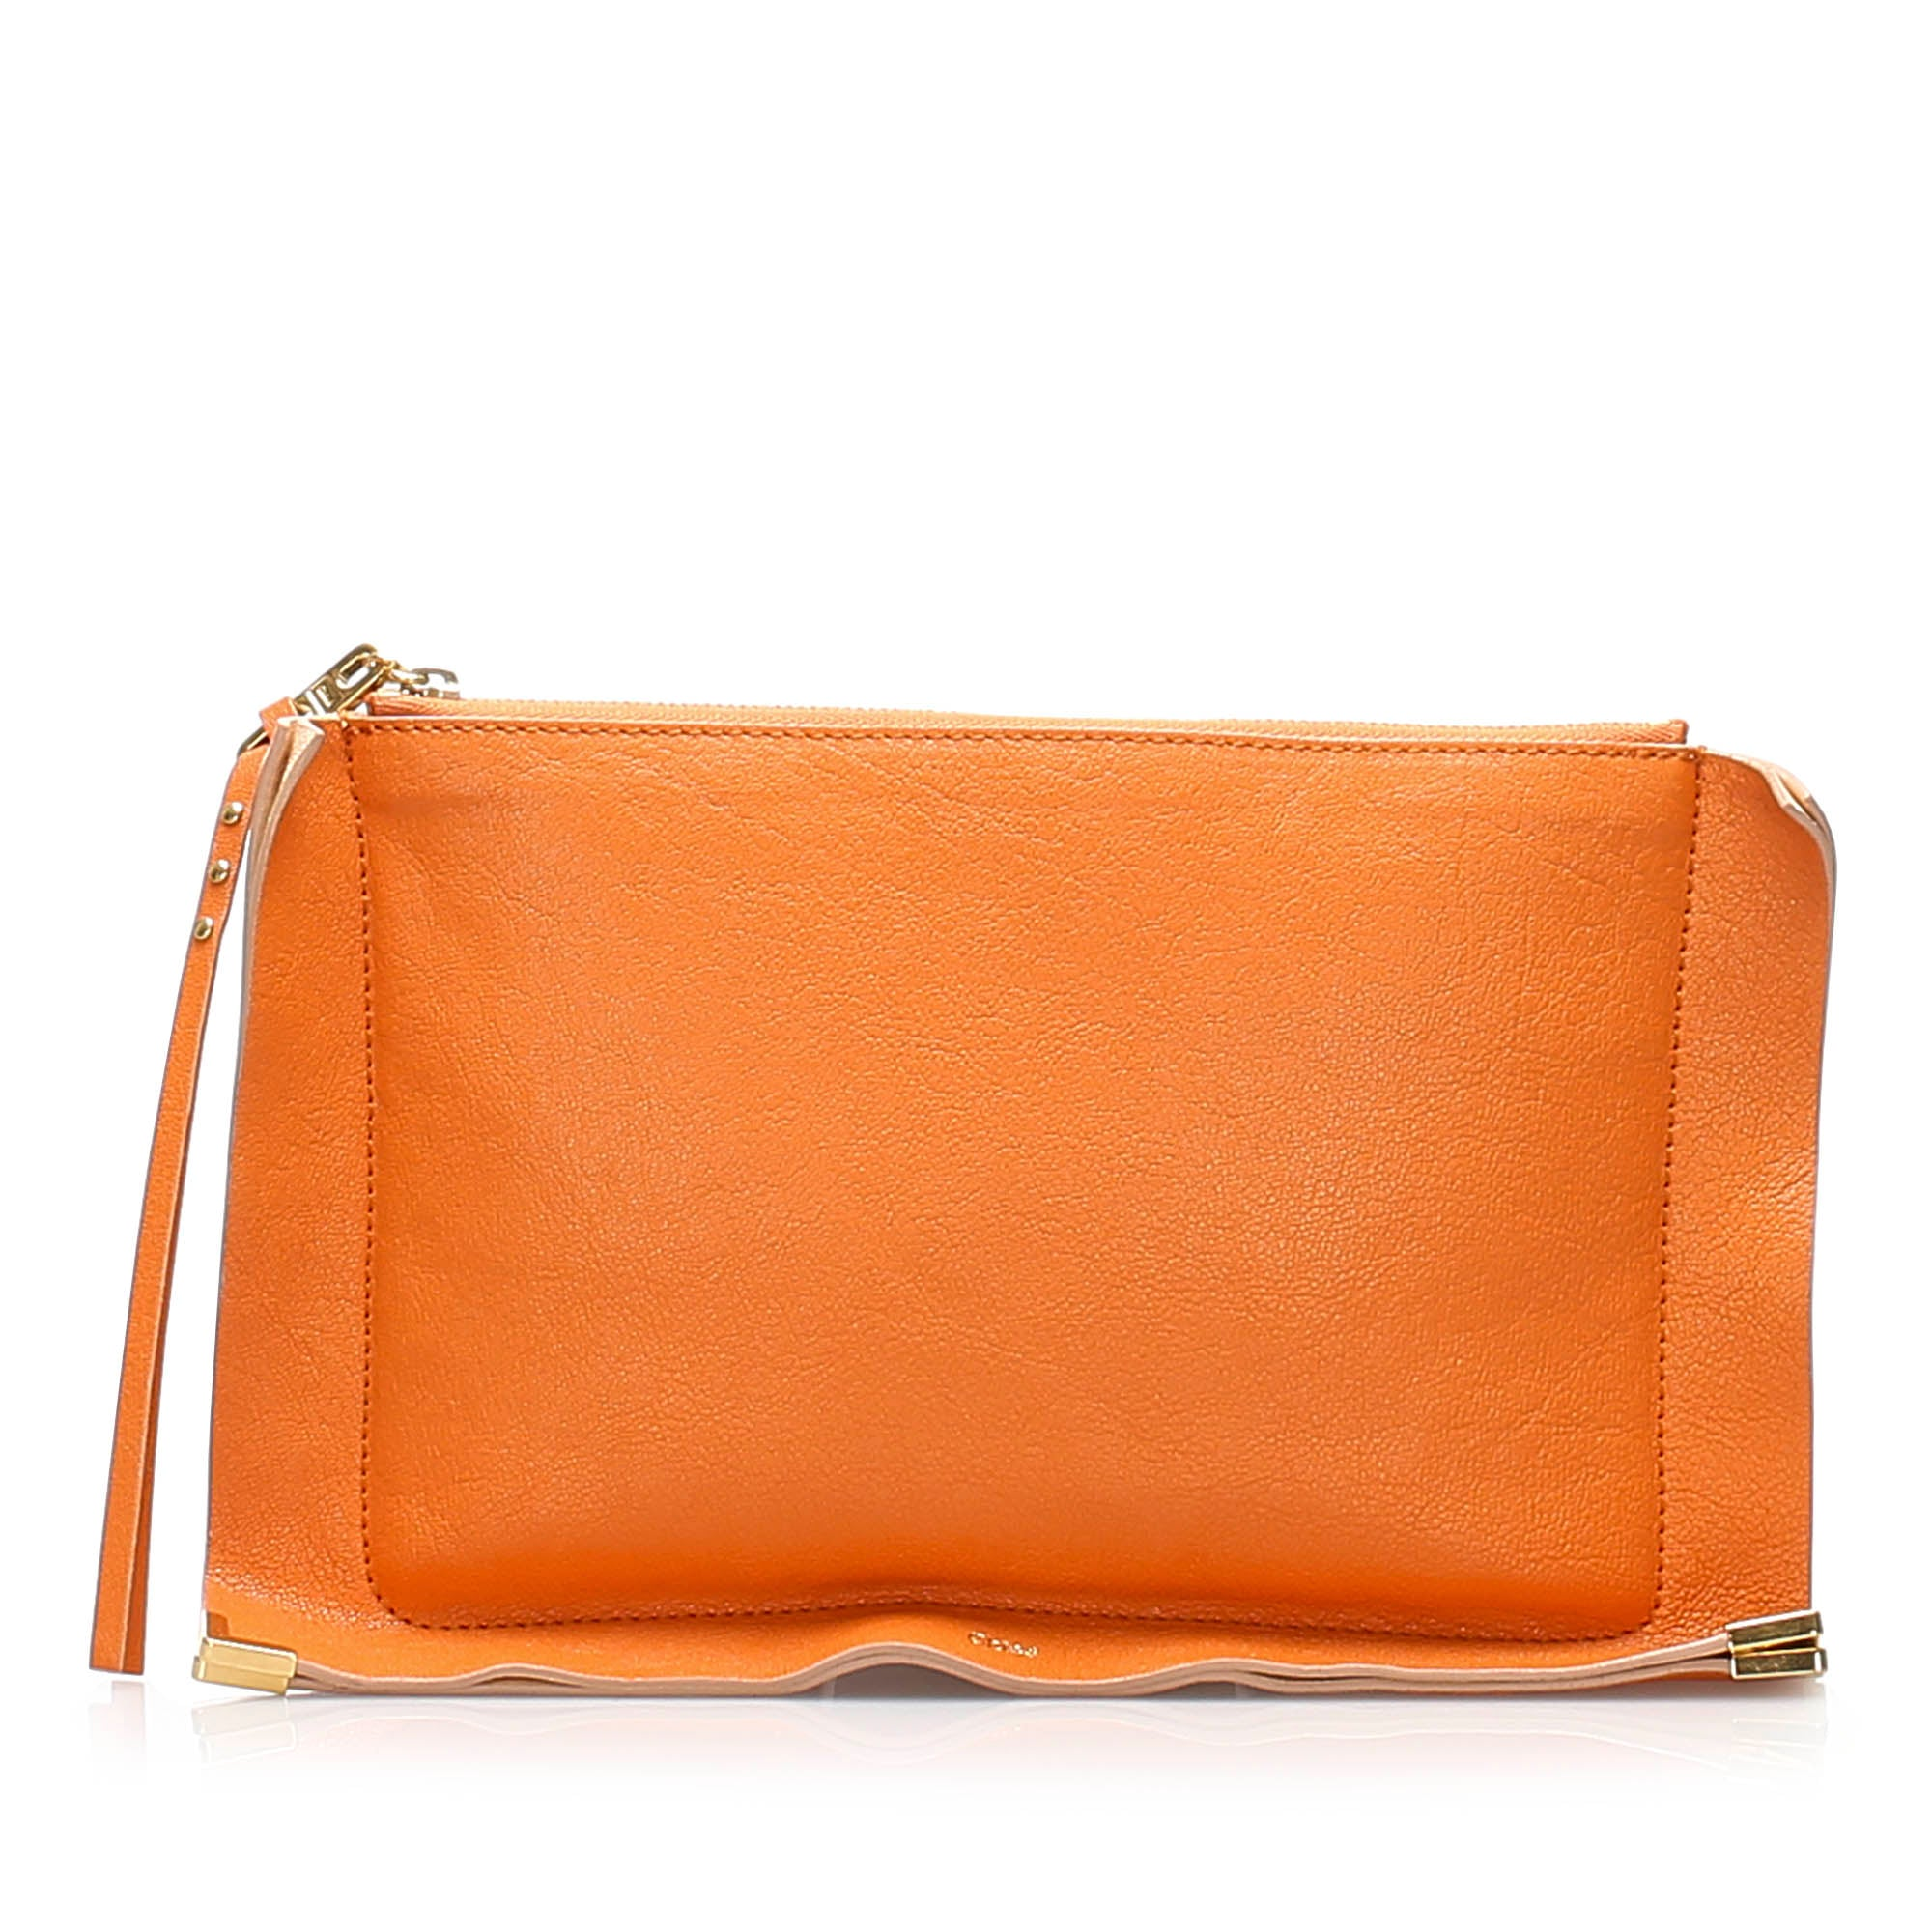 Chloe Orange Leather Clutch Bag